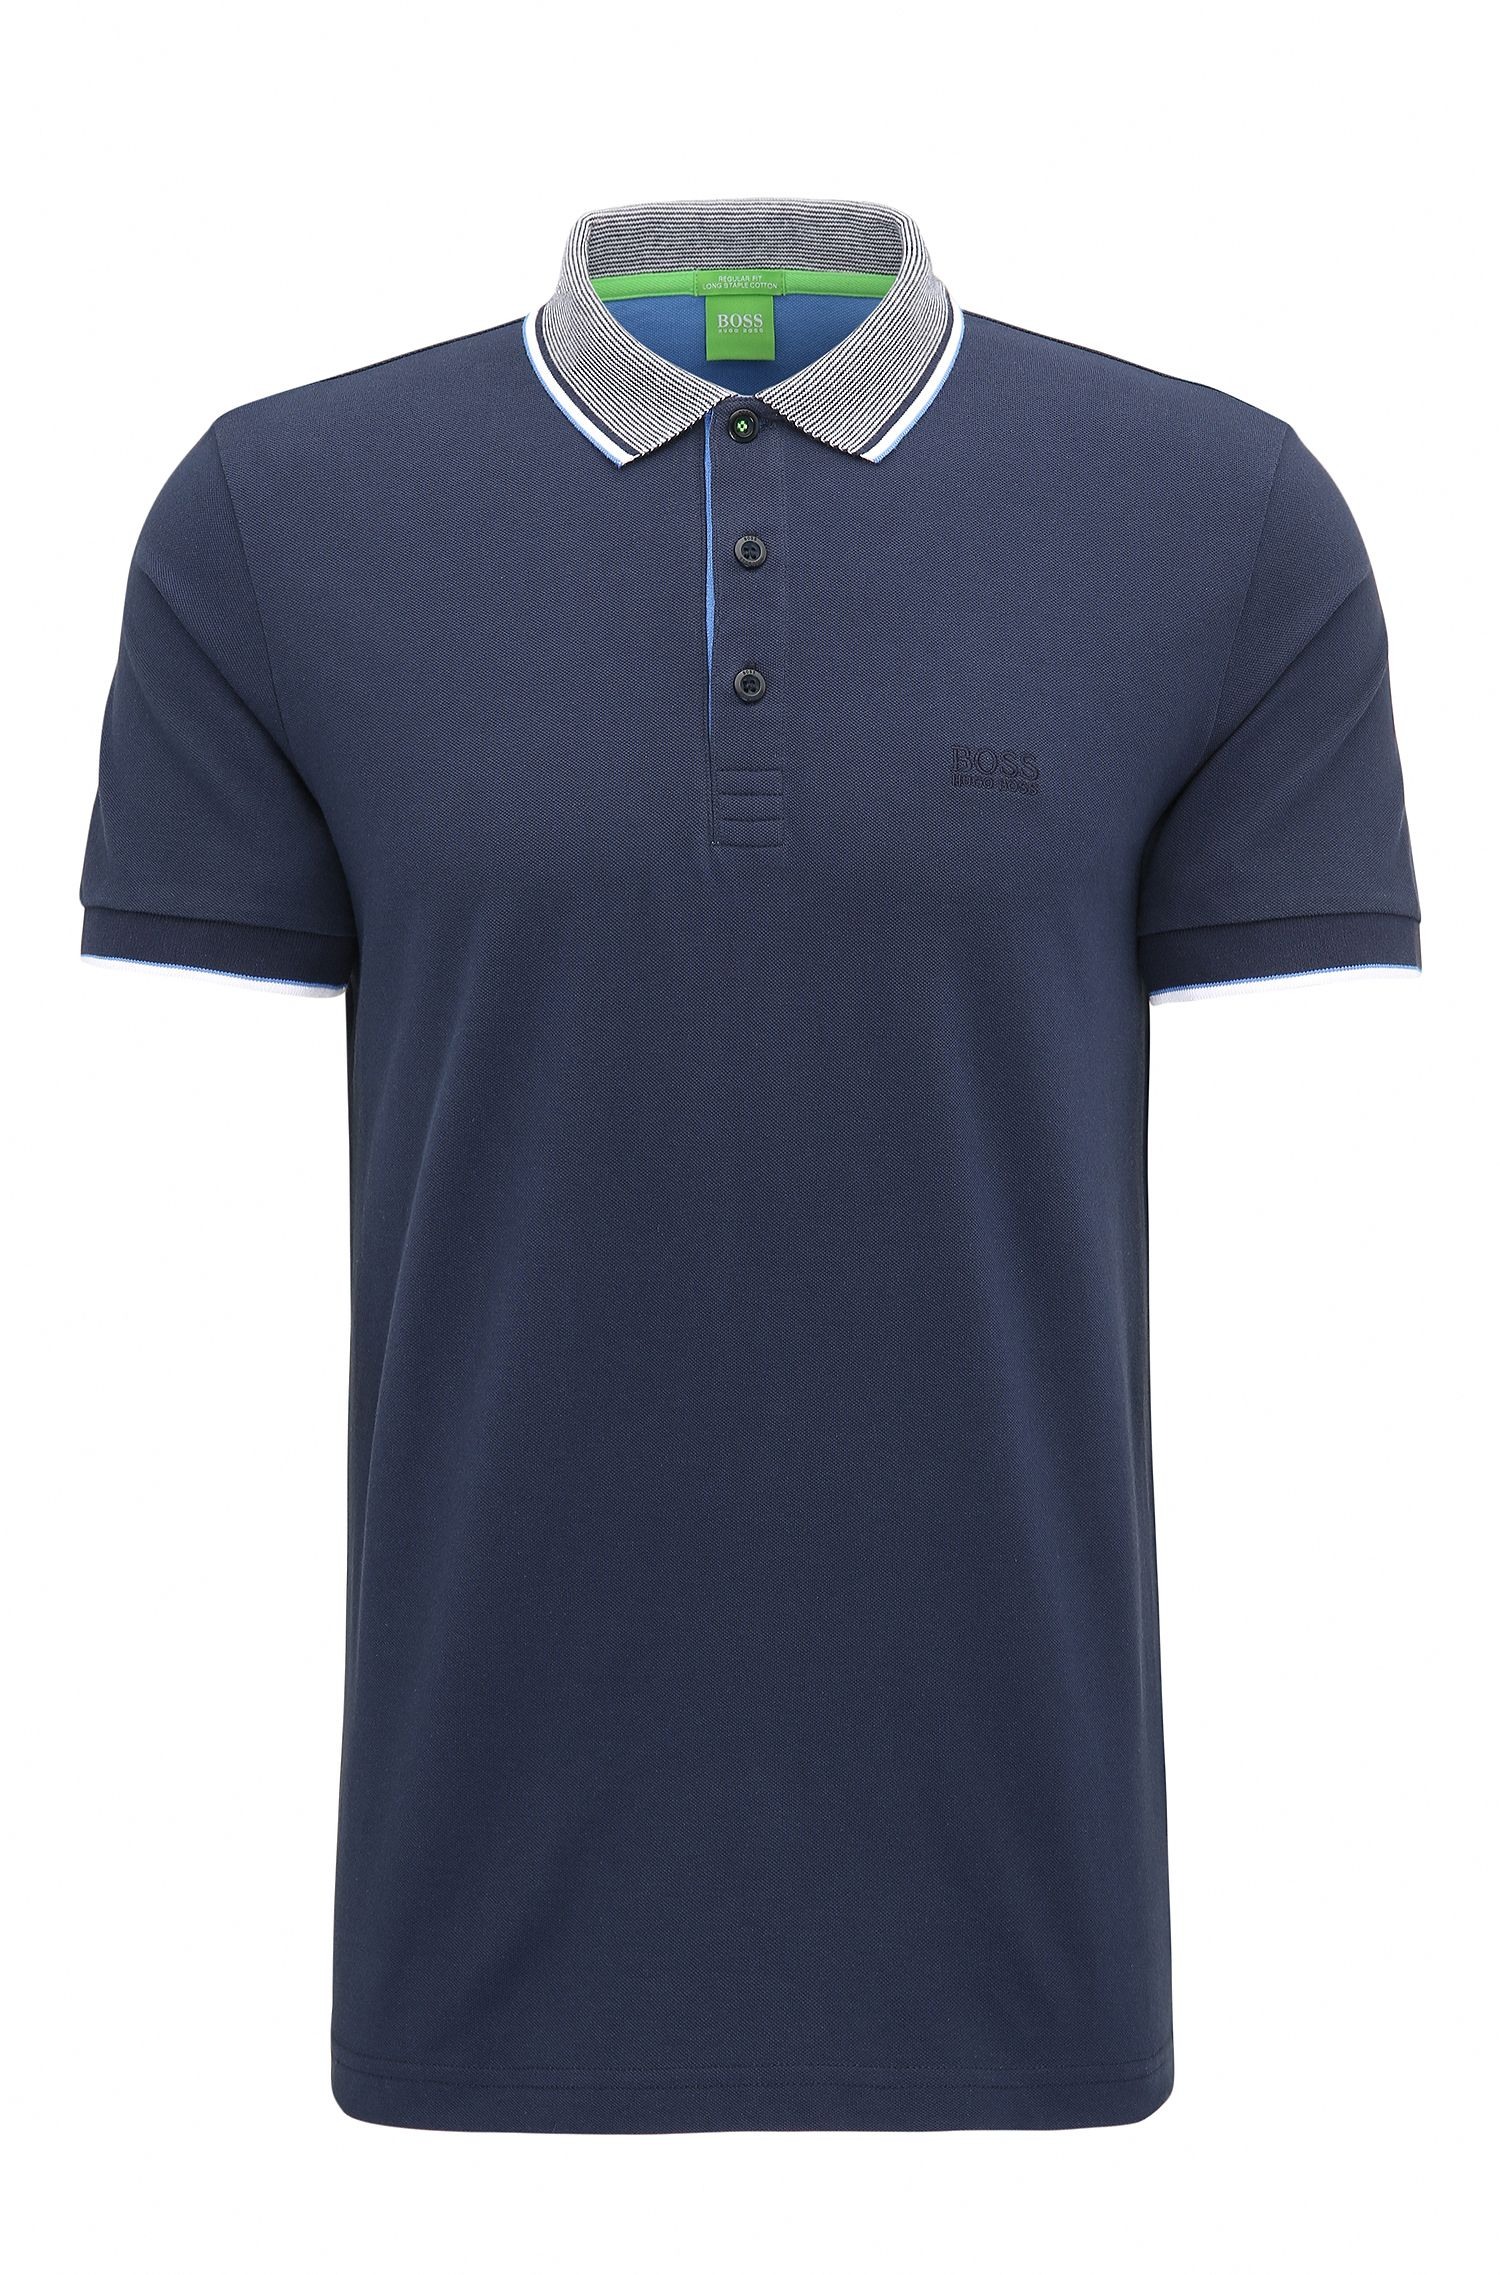 Polo regular fit en algodón de piqué